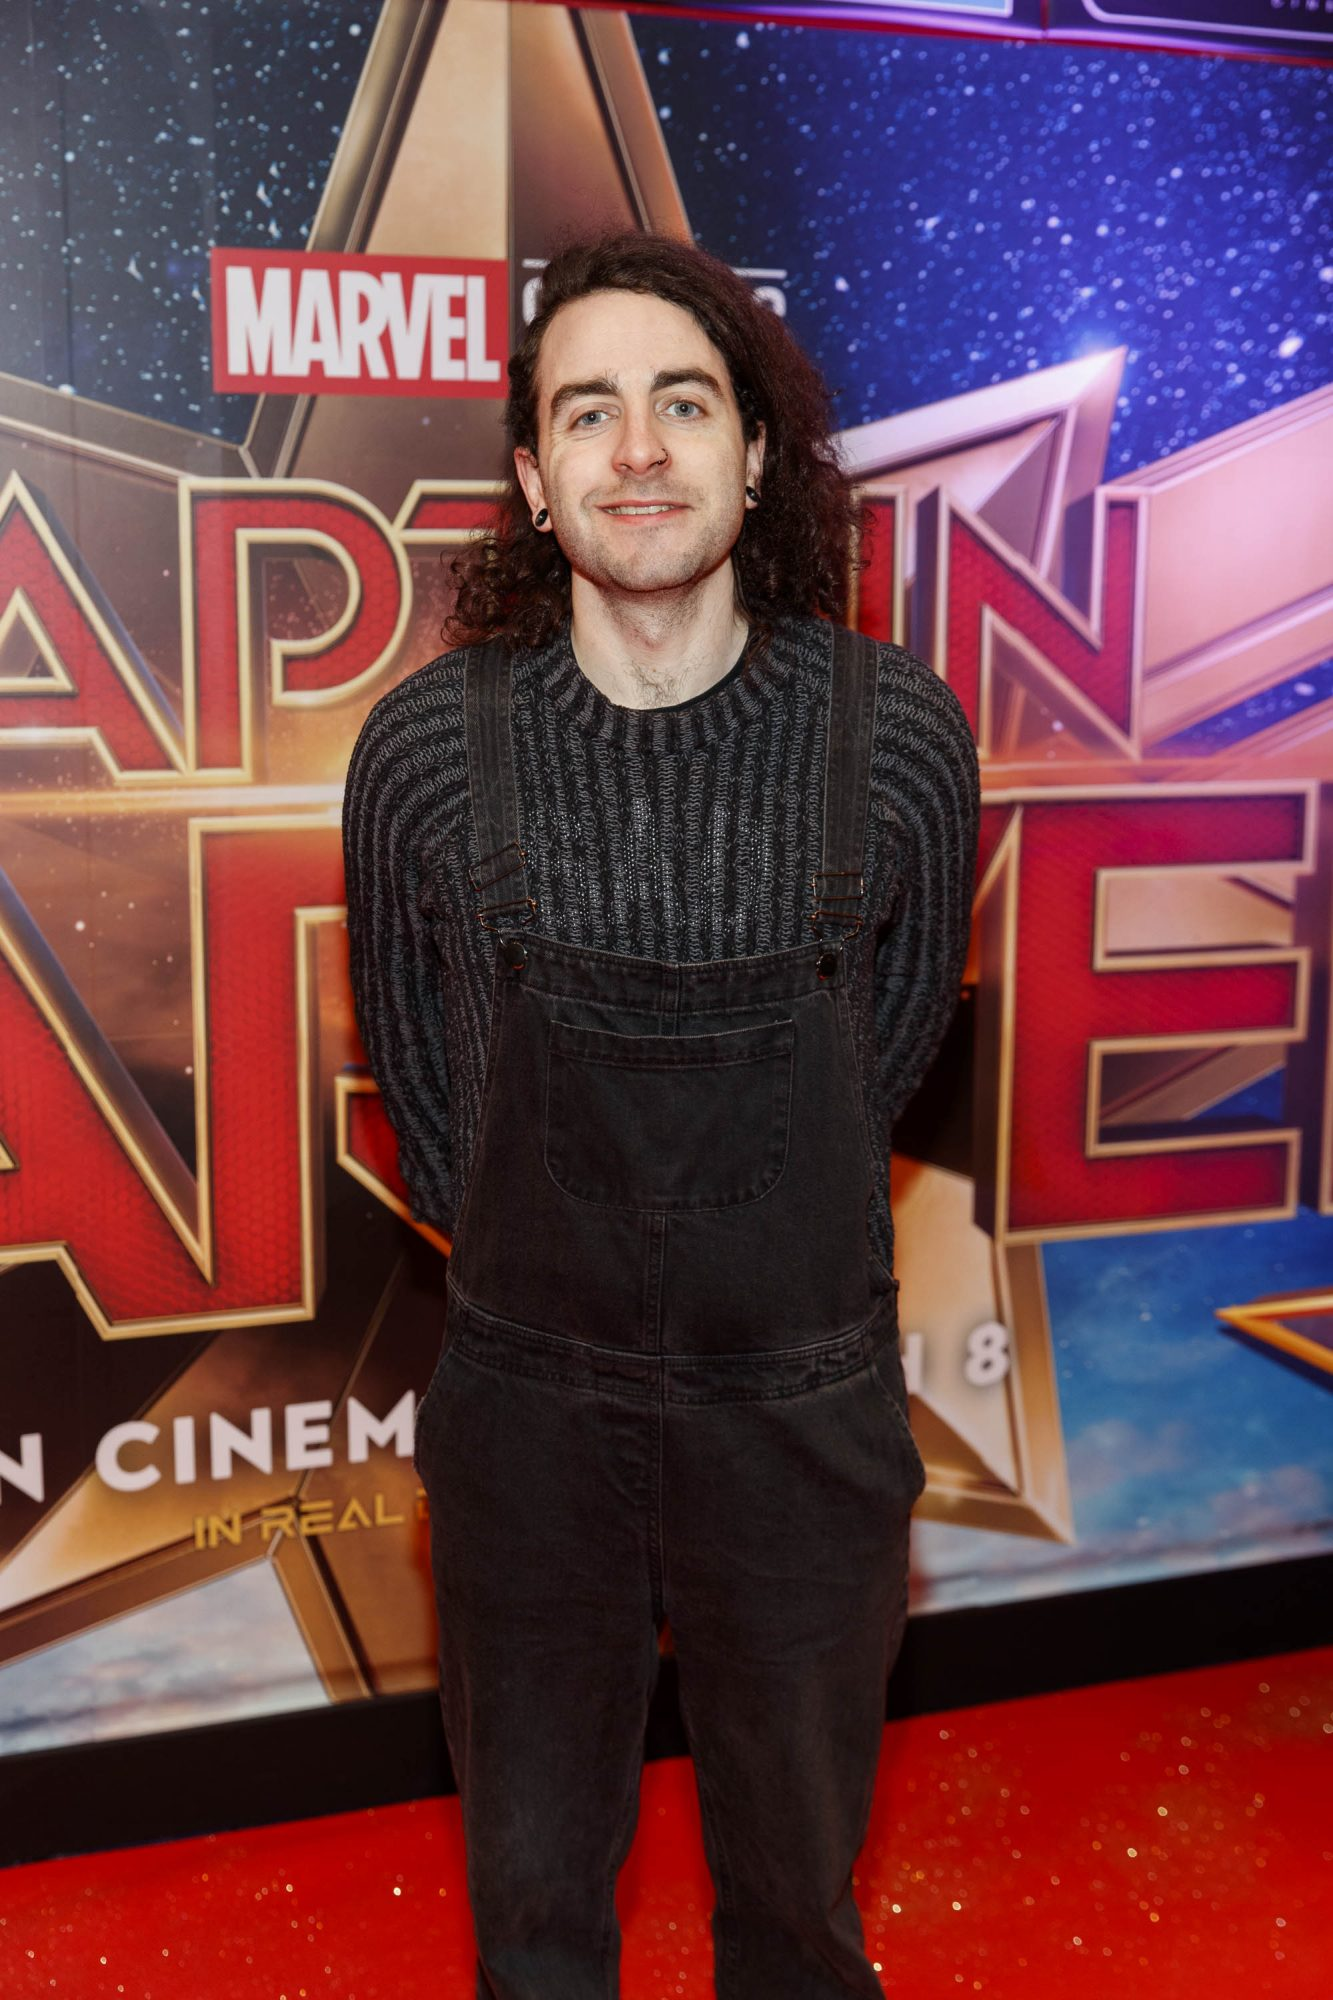 Davy Reilly pictured at a special preview screening of CAPTAIN MARVEL in Cineworld Dublin. Picture by: Andres Poveda